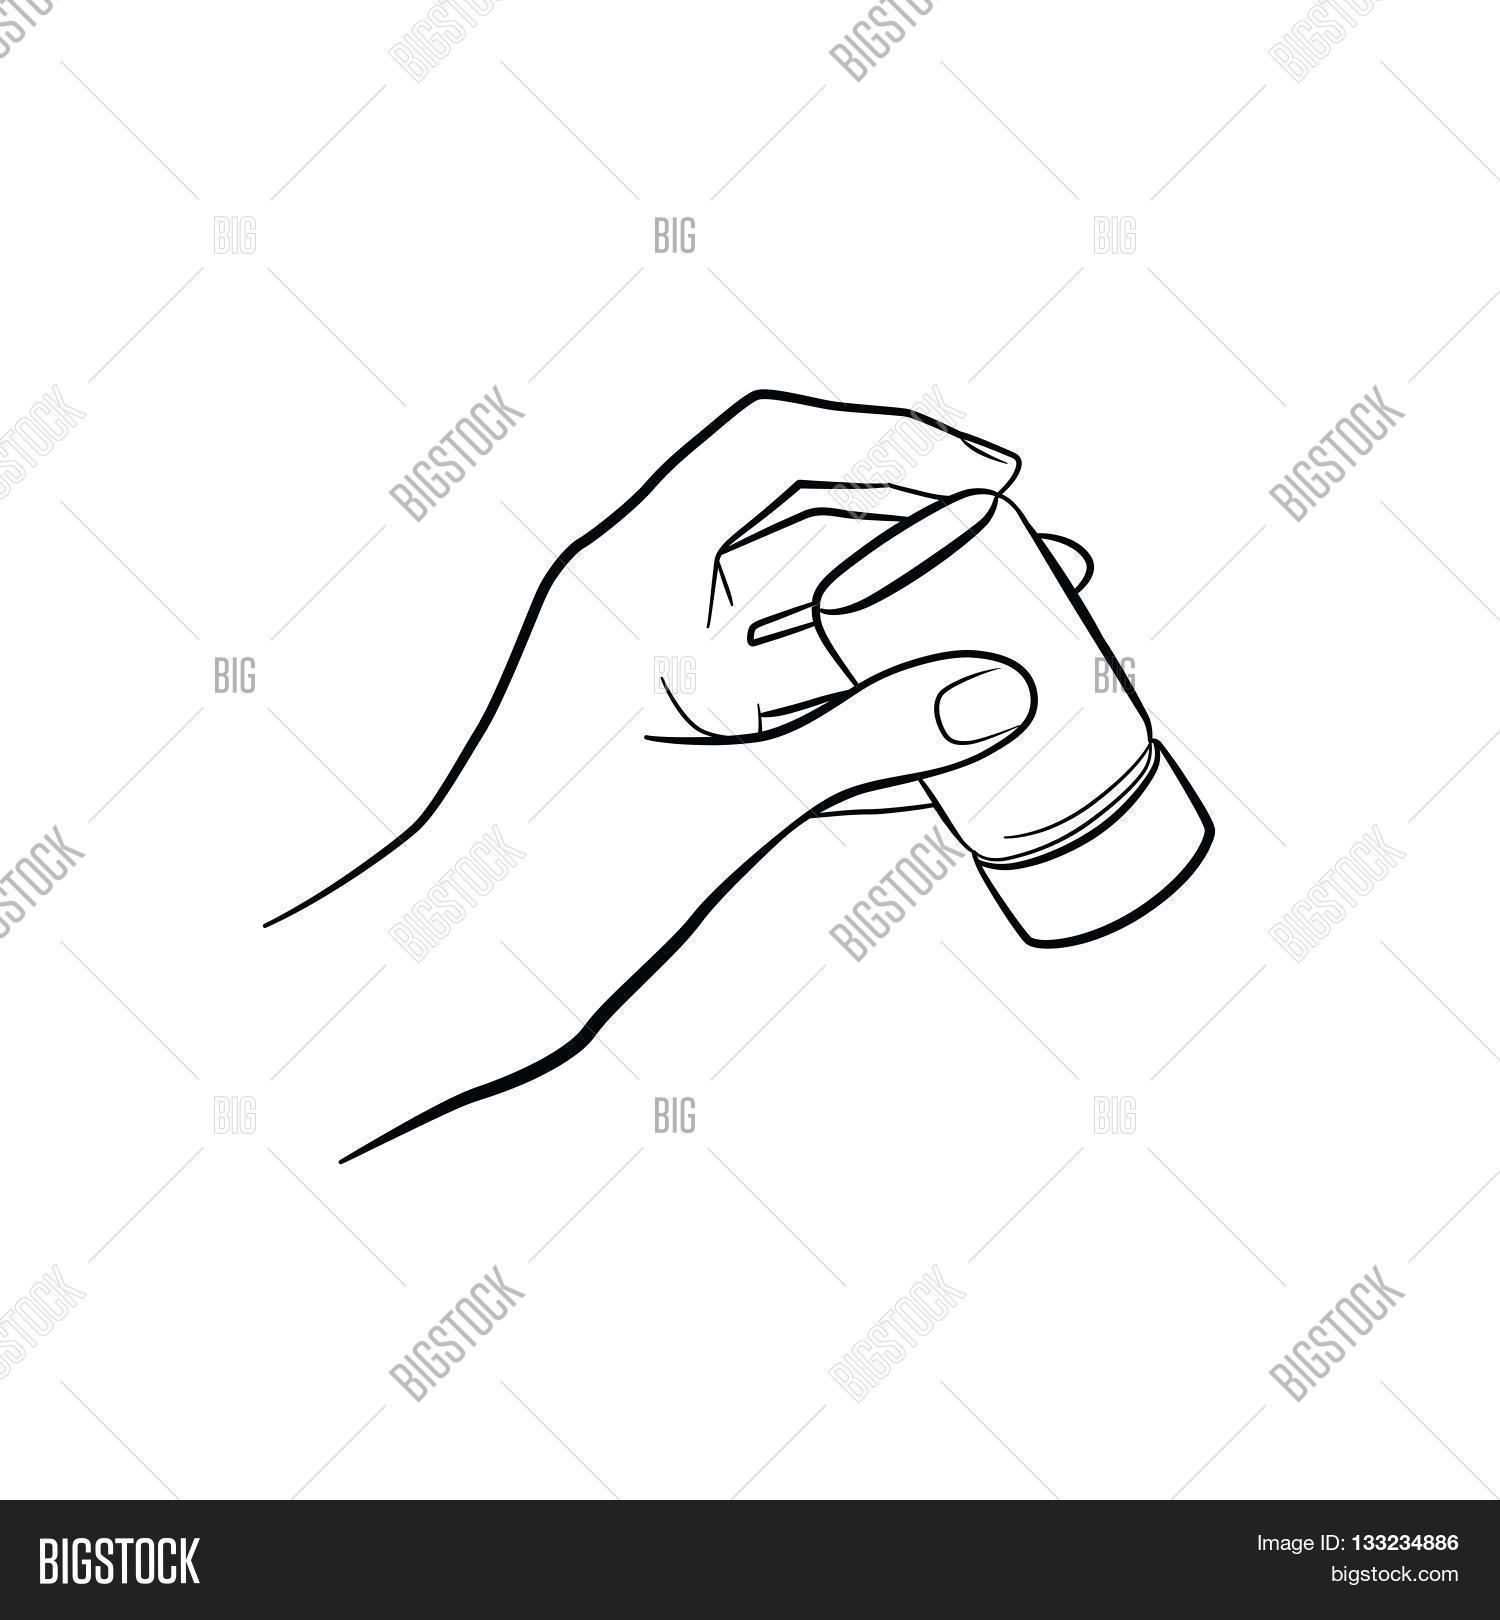 Kitchen Tools Drawings Woman Hand Holding Saltkitchen Toolsoutline Cooking Gesture